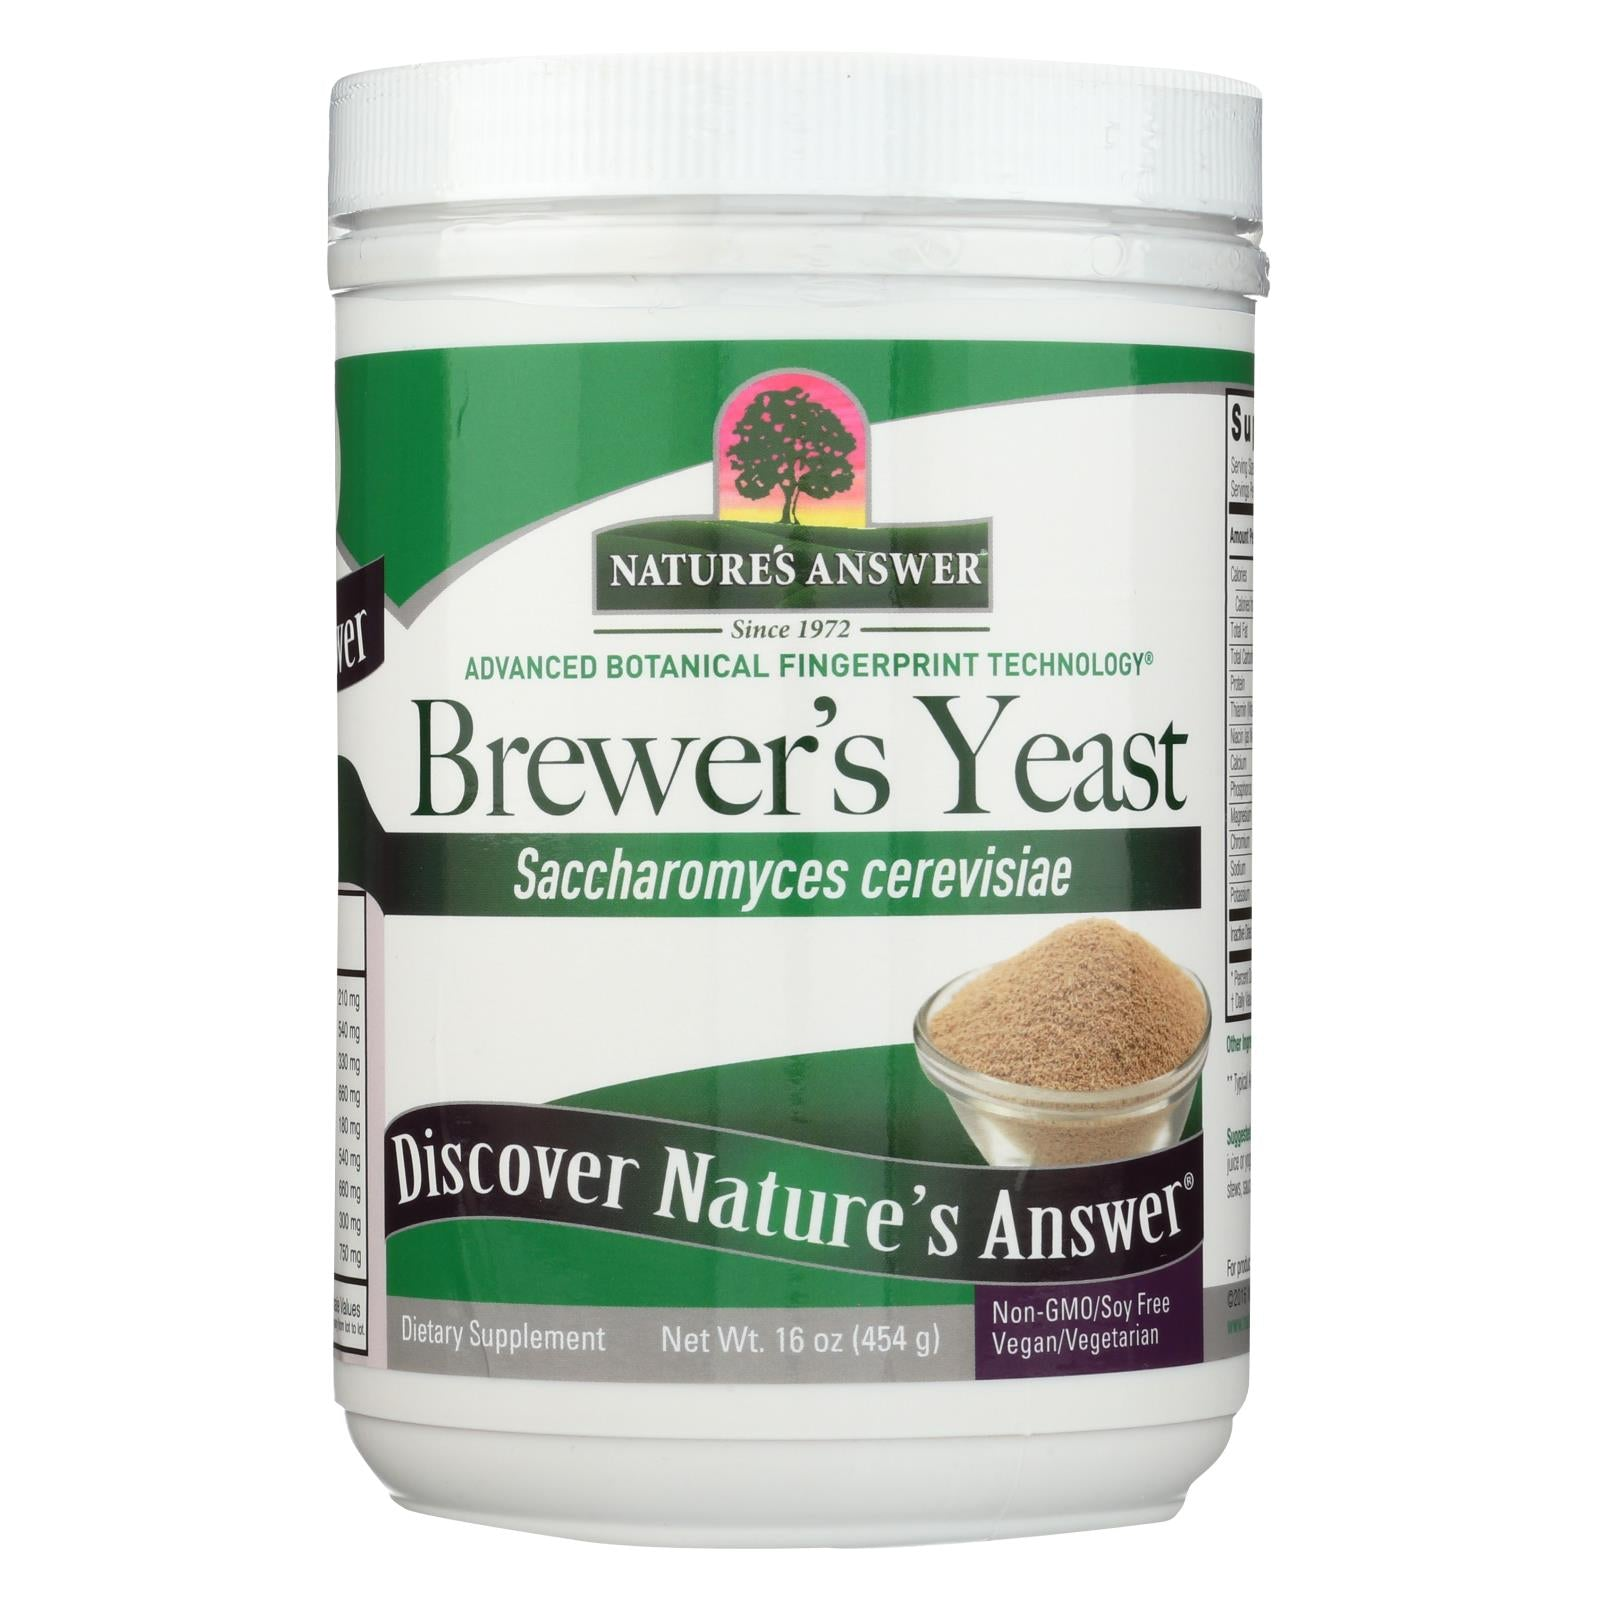 Nature's Answer Brewers Yeast - Gluten Free - 16 Oz HG1506203